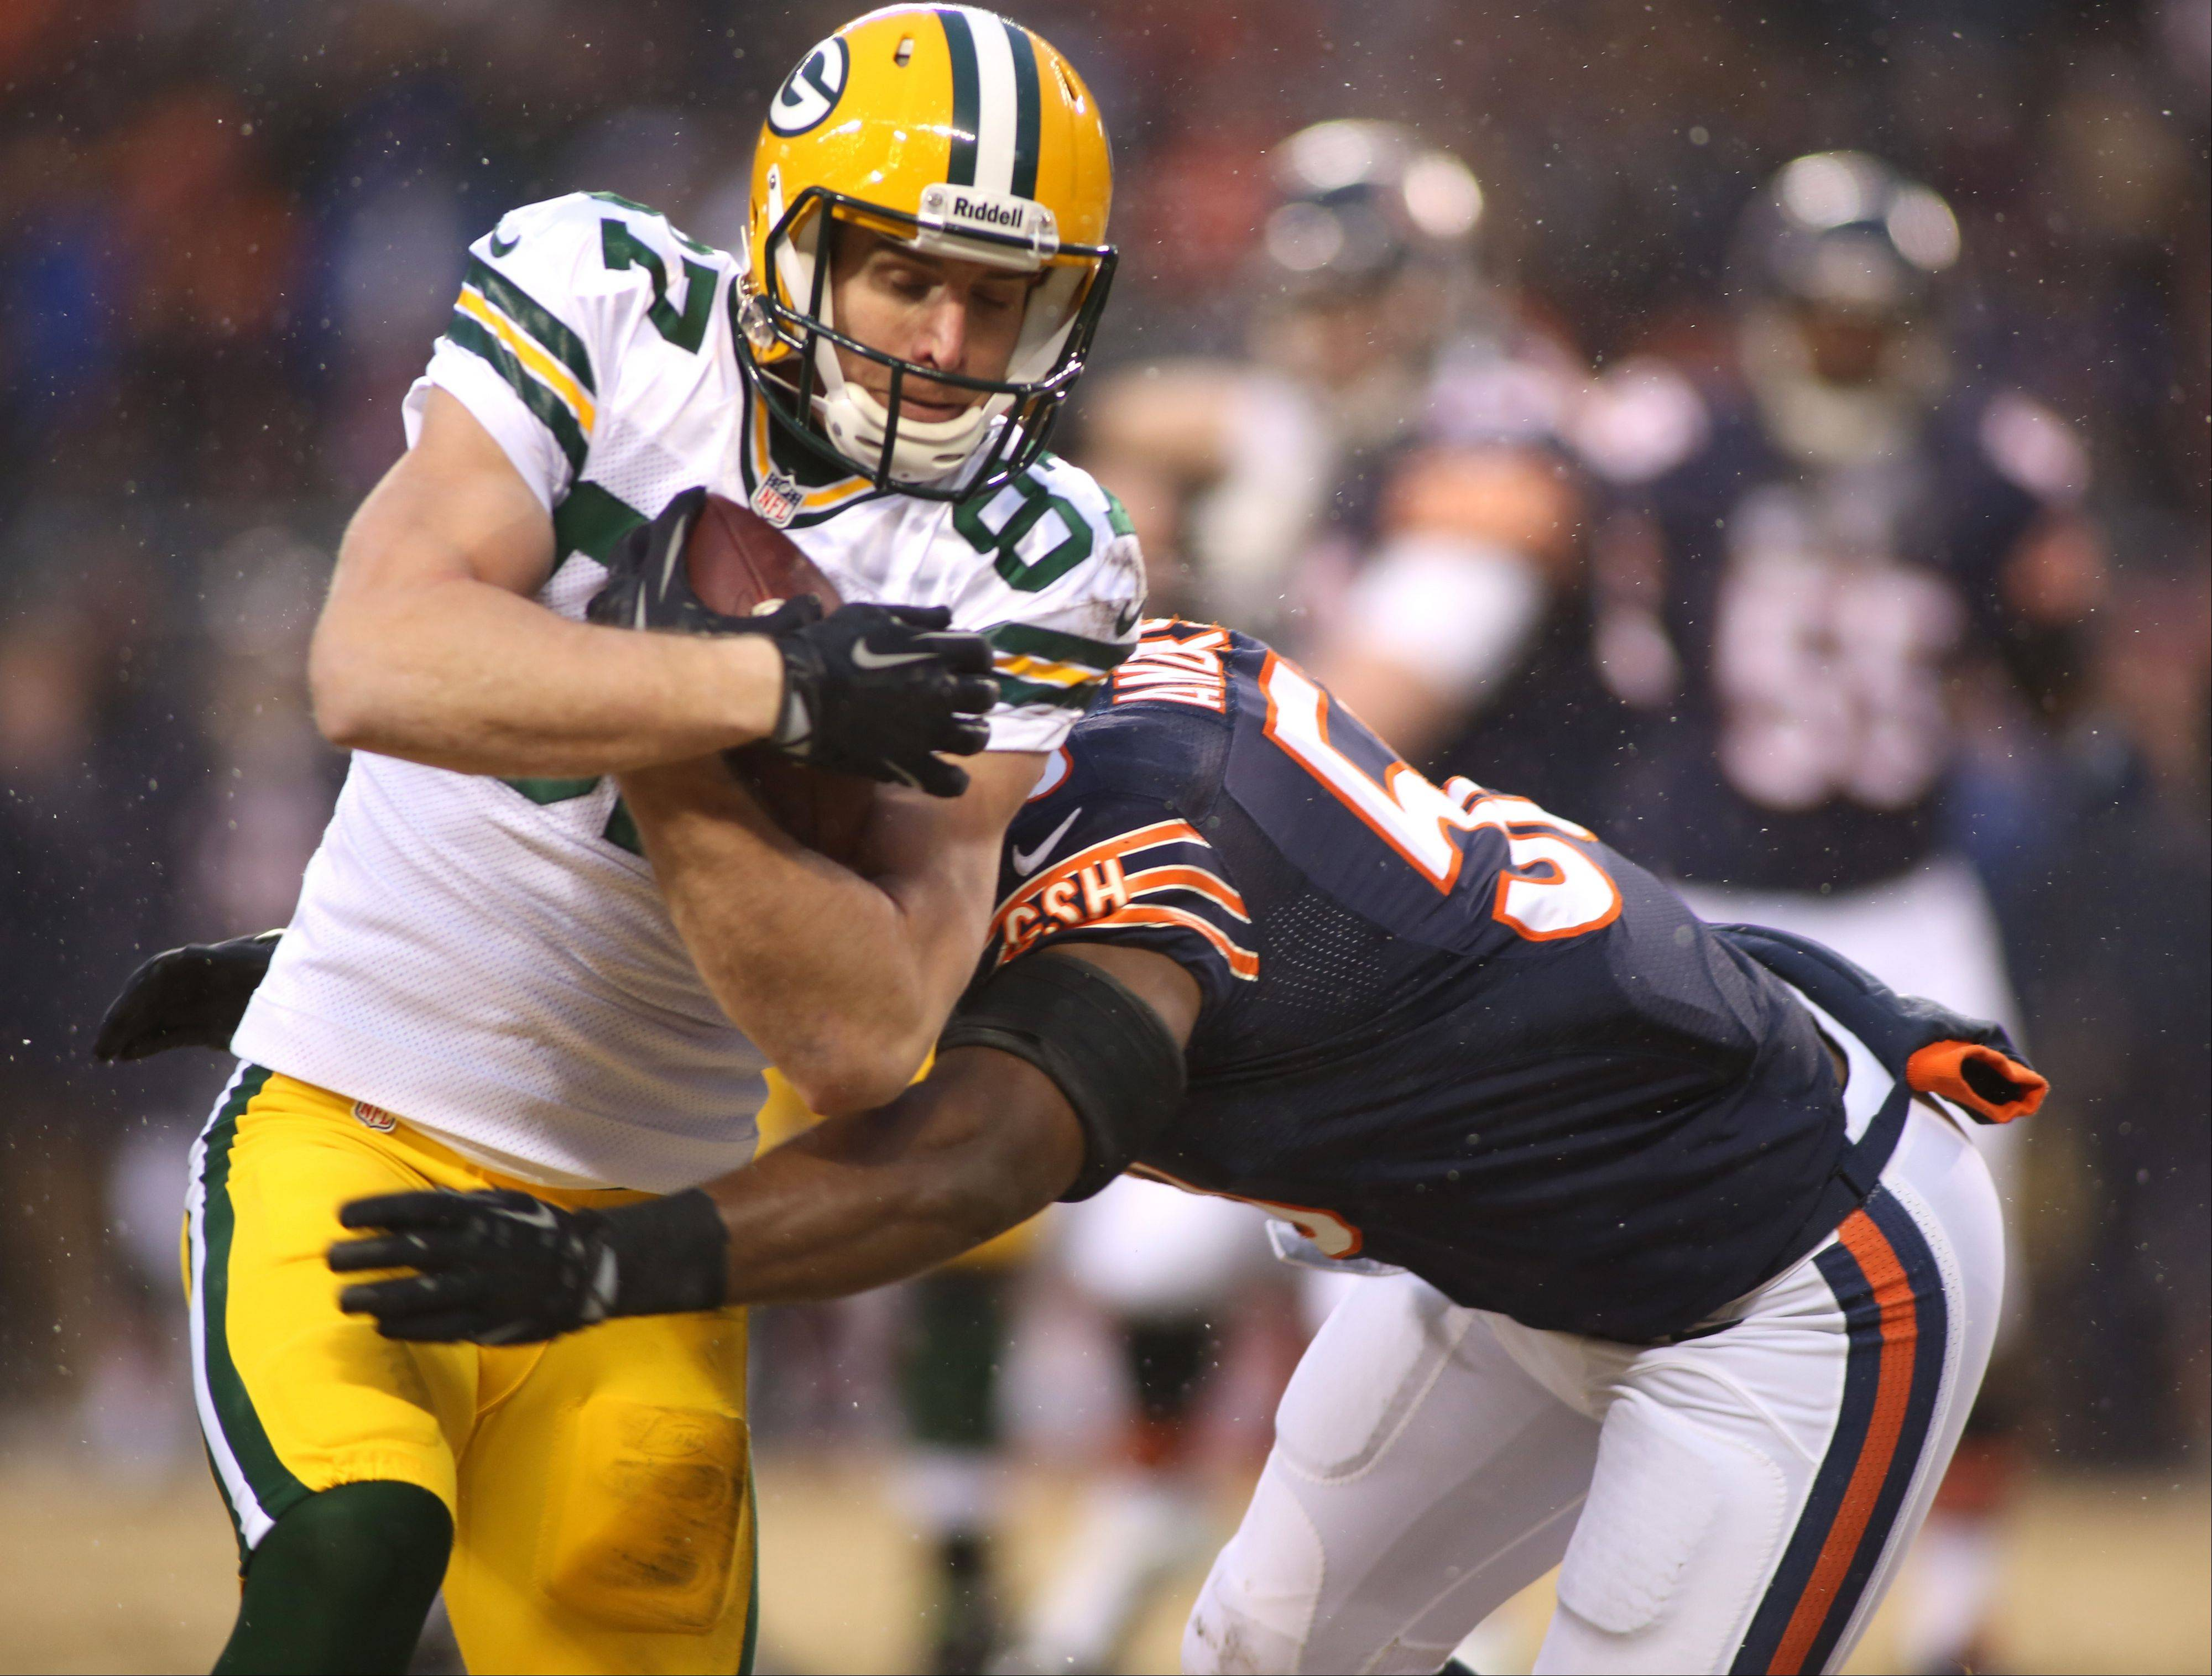 Green Bay Packers wide receiver Jordy Nelson moves up the field against the Bears' James Anderson on Sunday. The Bears defense couldn't stop the Packers when the game was on the line.